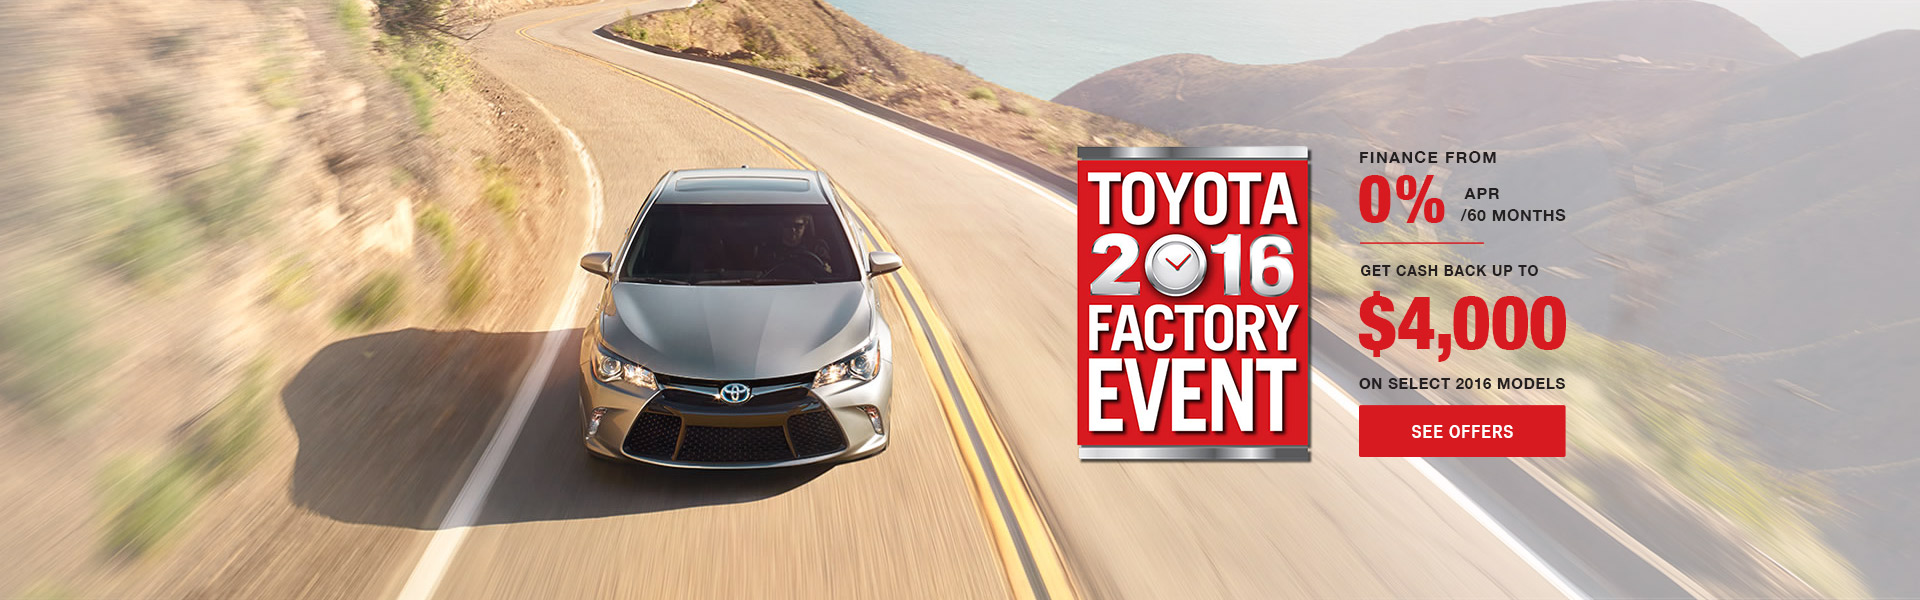 Toyota 2016 Factory Event. Finance from 0% APR for 60 months or up to $4,000 cash back select 2016 m